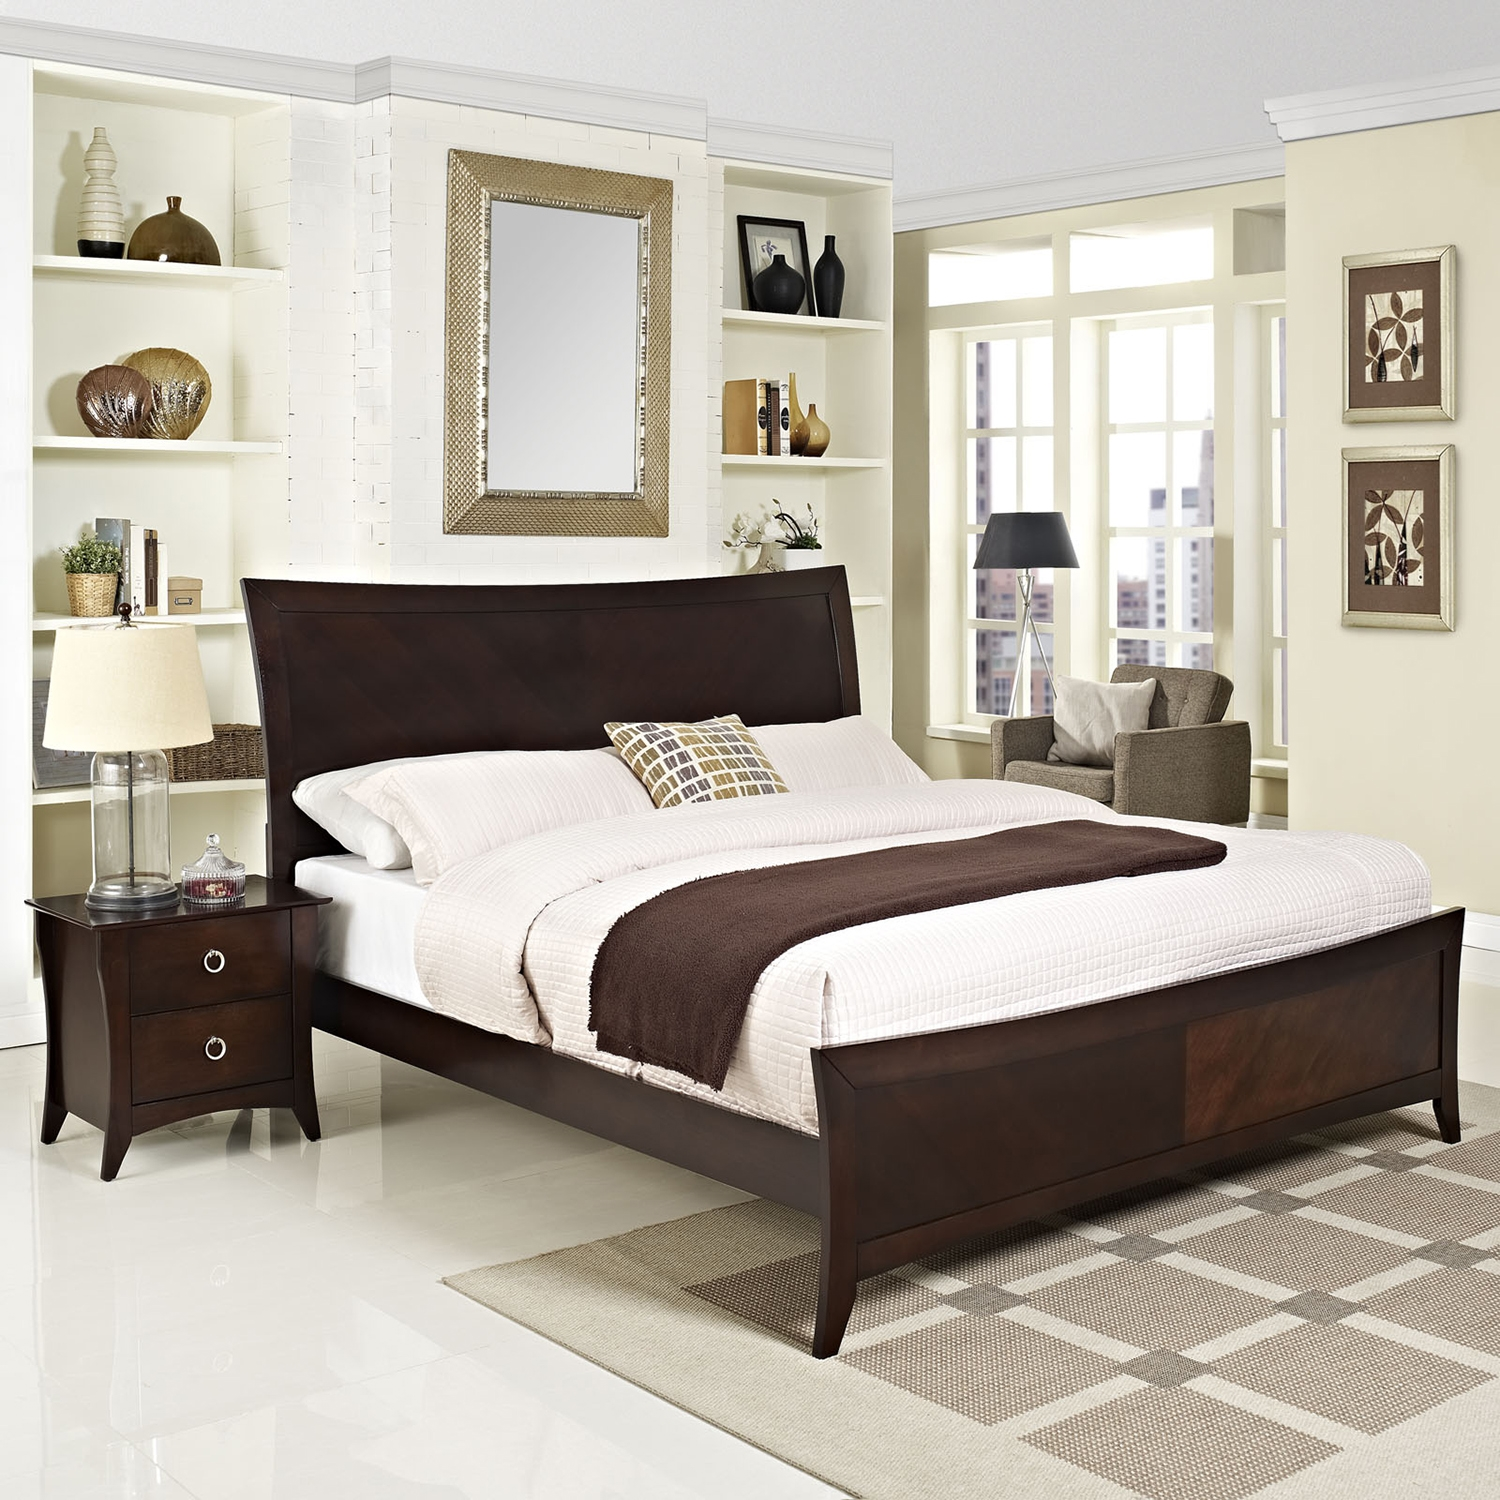 Elizabeth 2 Pieces Queen Bedroom Set - Cappuccino - EEI-MOD-5060-CAP-SET